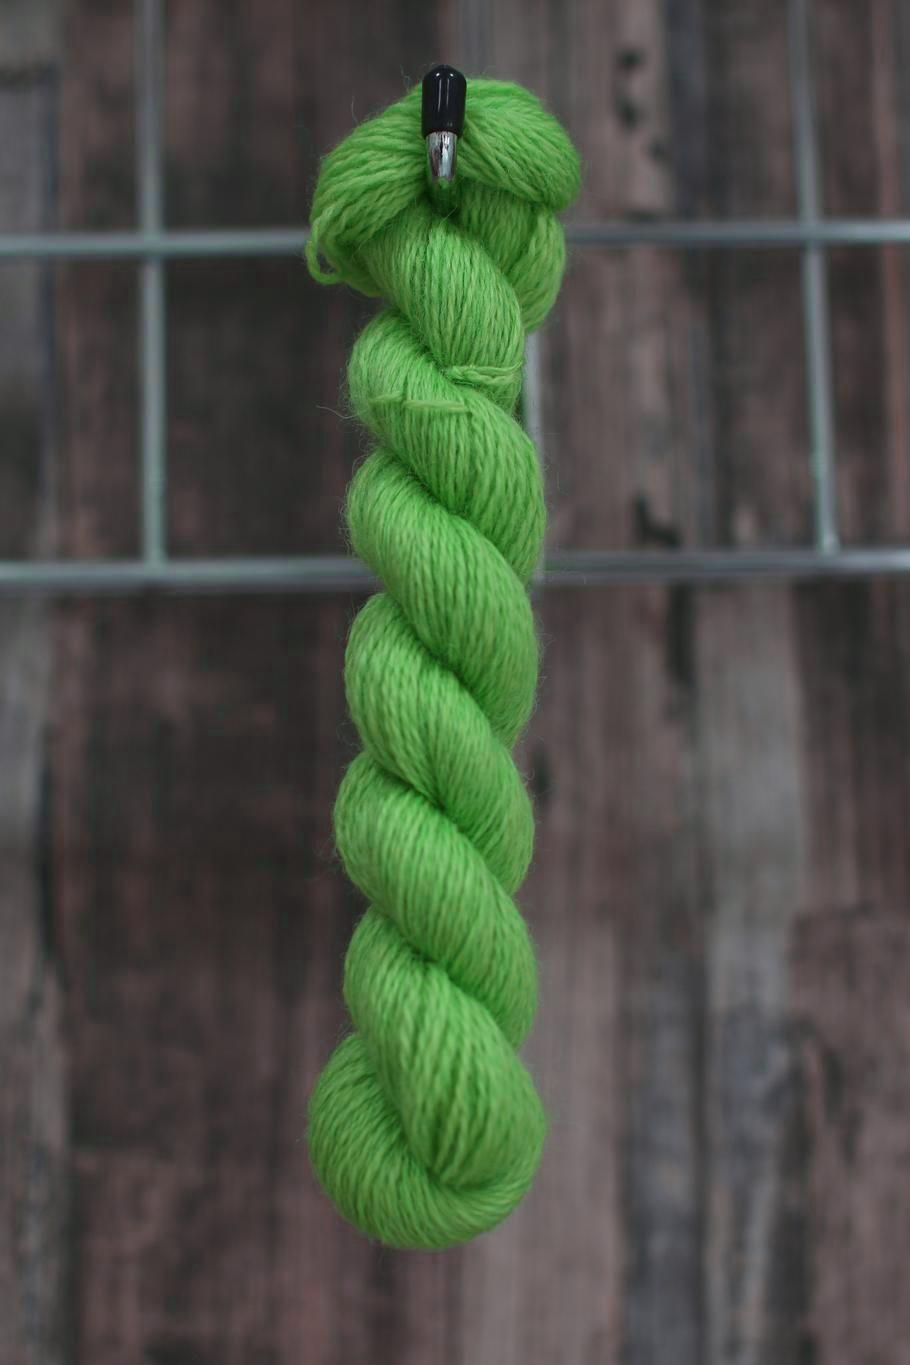 a skein of vibrant green wool hanging from a hook